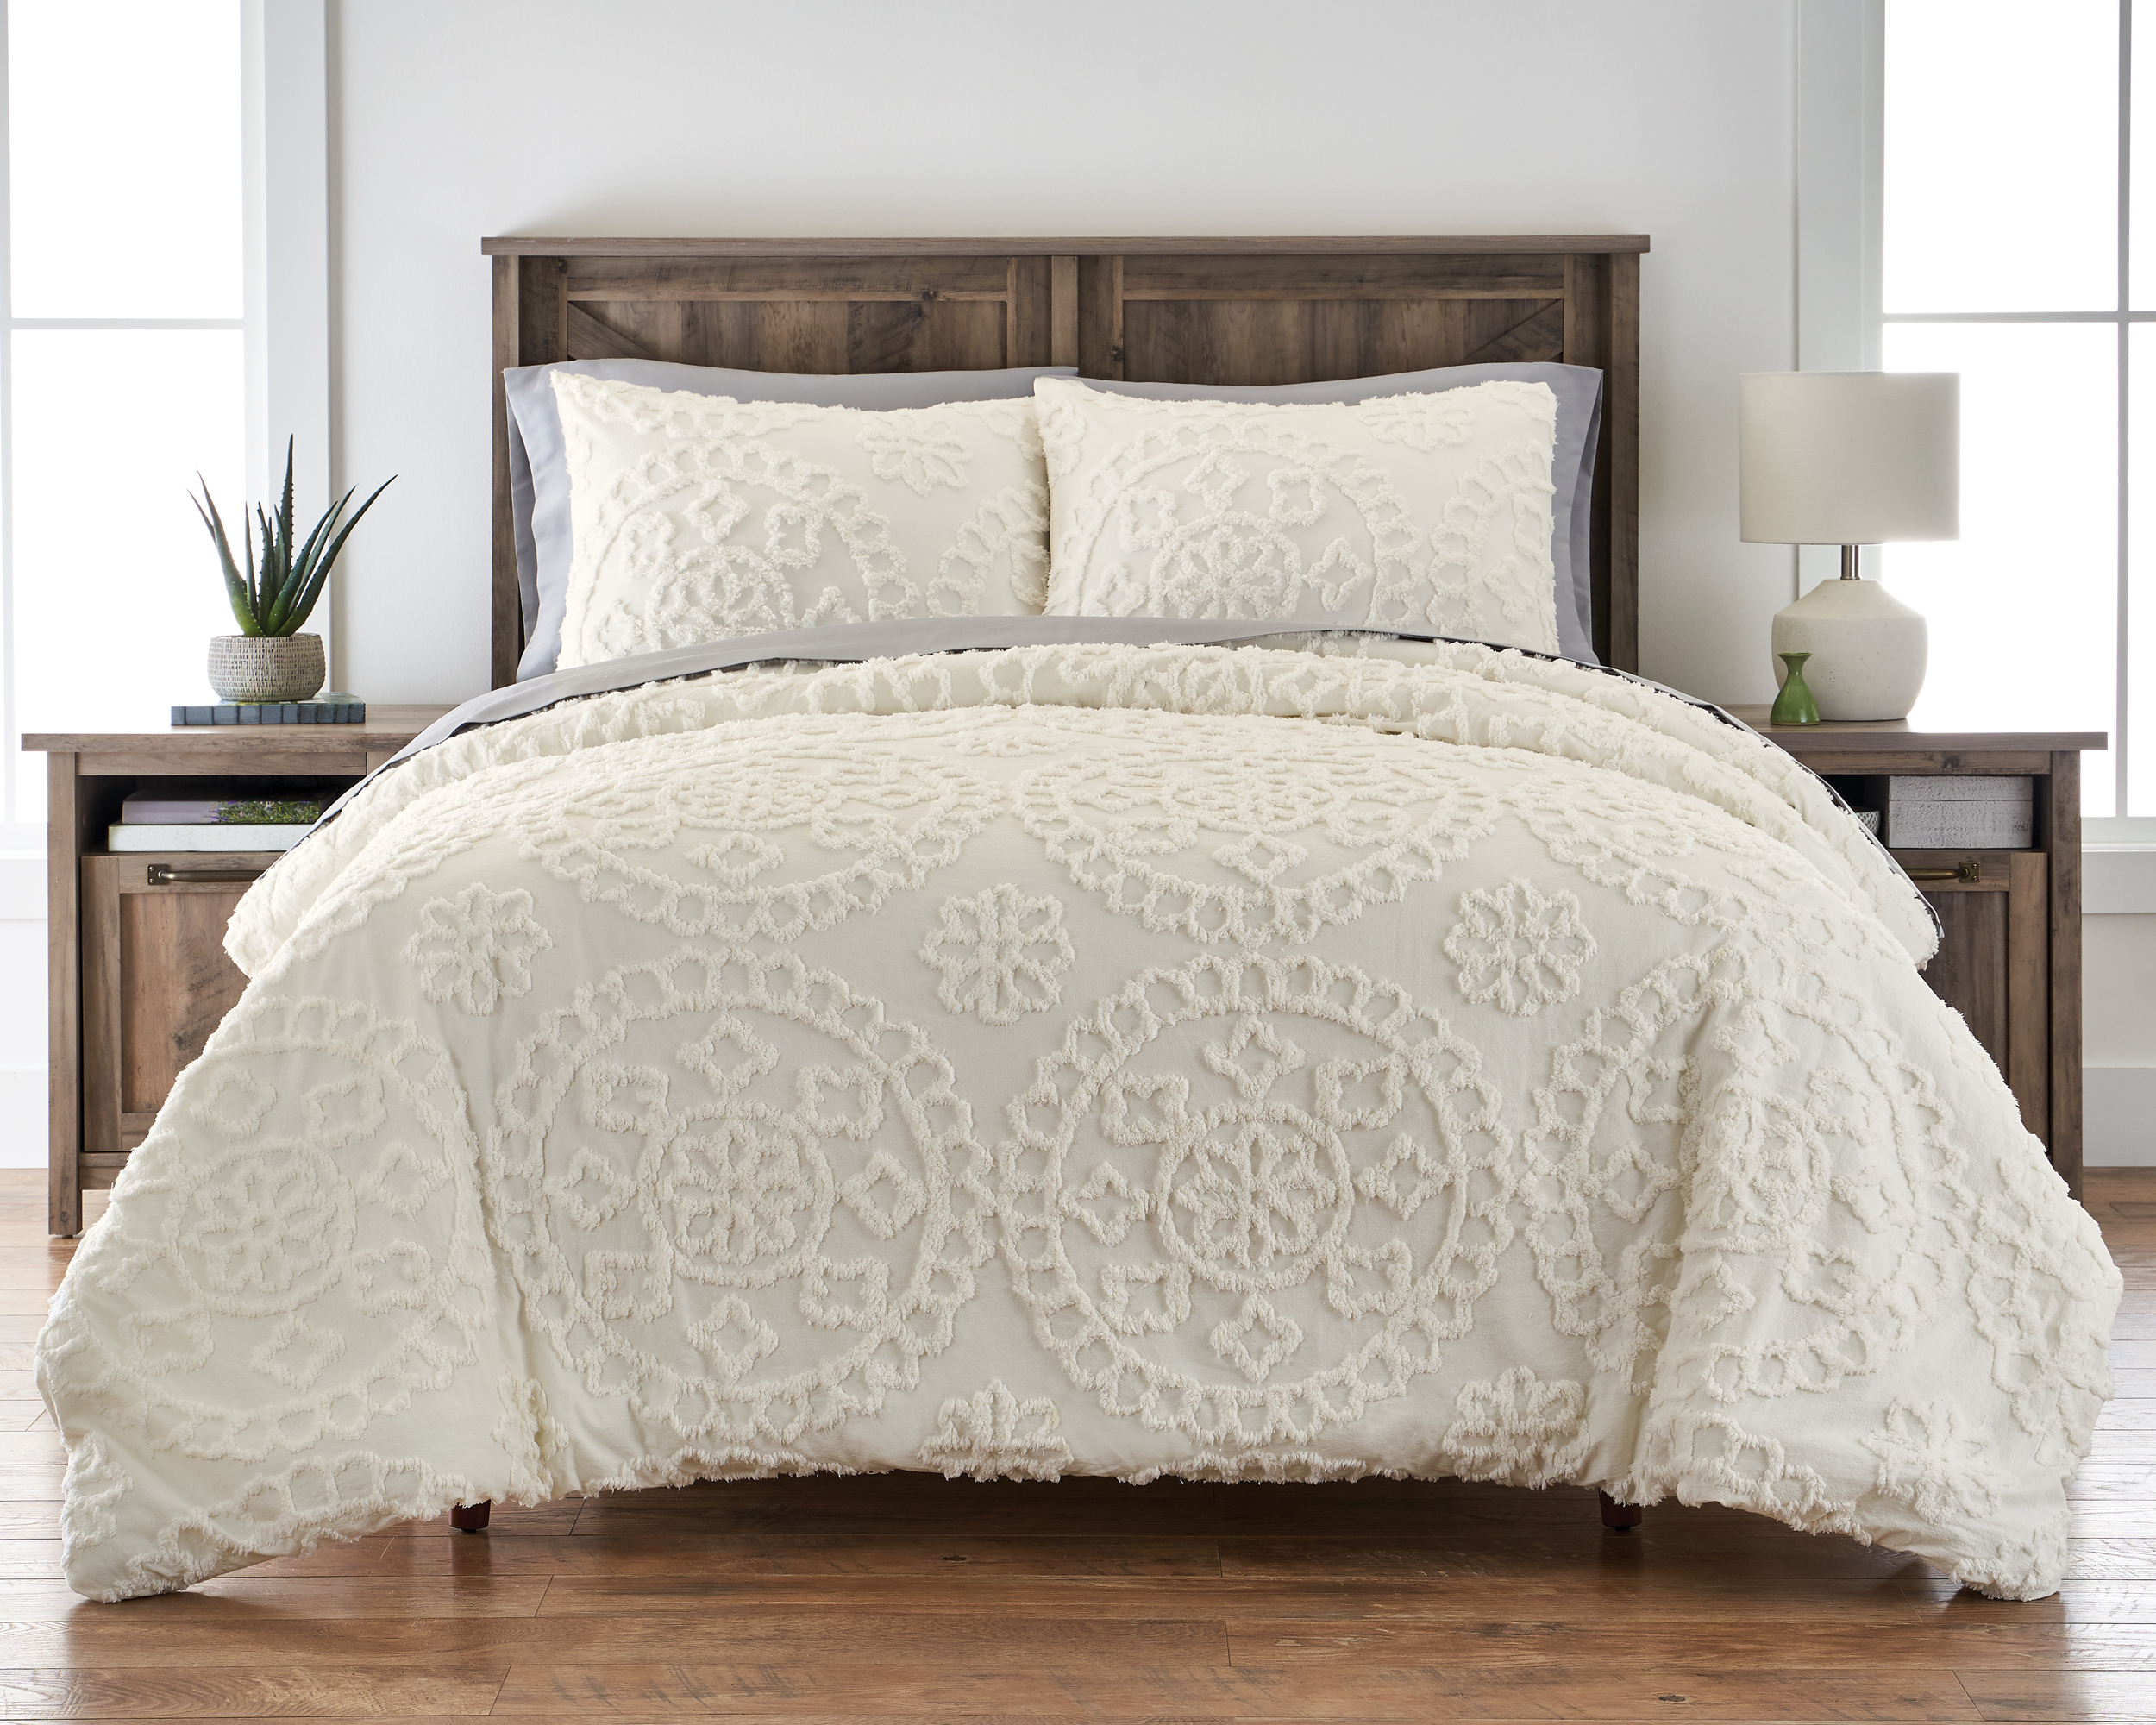 Better Homes and Gardens Tufted Global Ivory 3 Piece Comforter Set